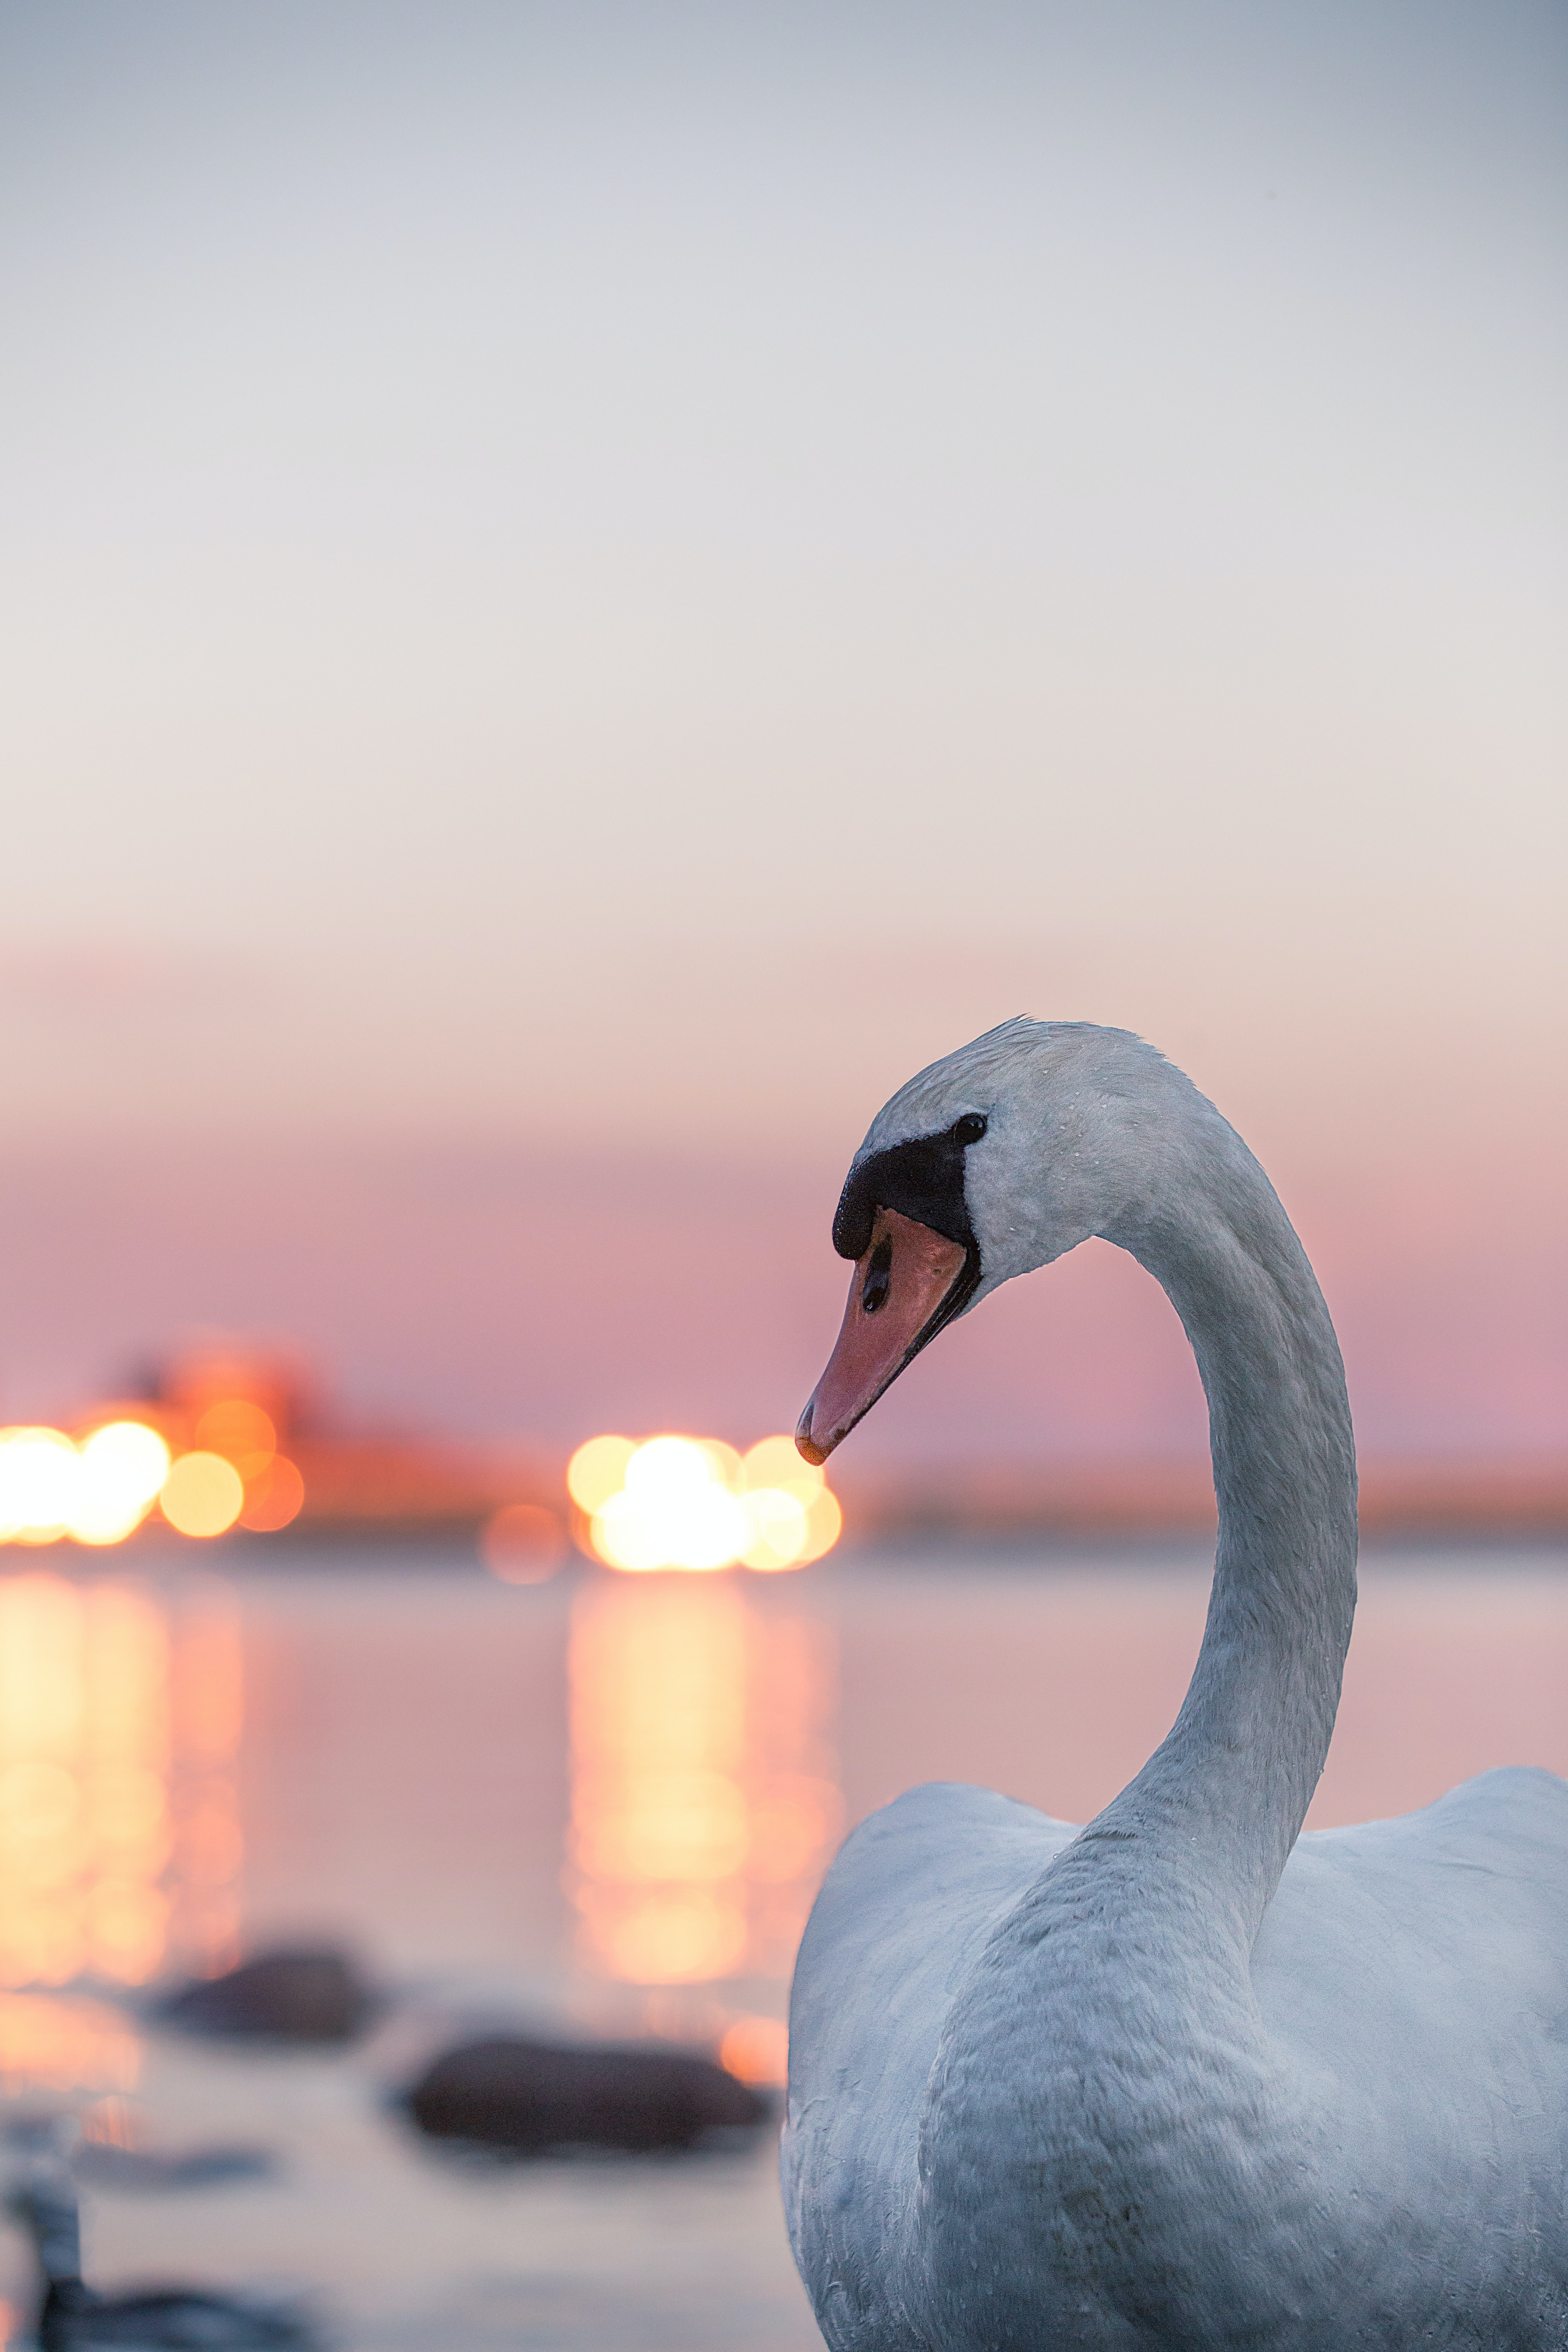 72209 download wallpaper Animals, Lights, Bird, Blur, Smooth, Swan screensavers and pictures for free